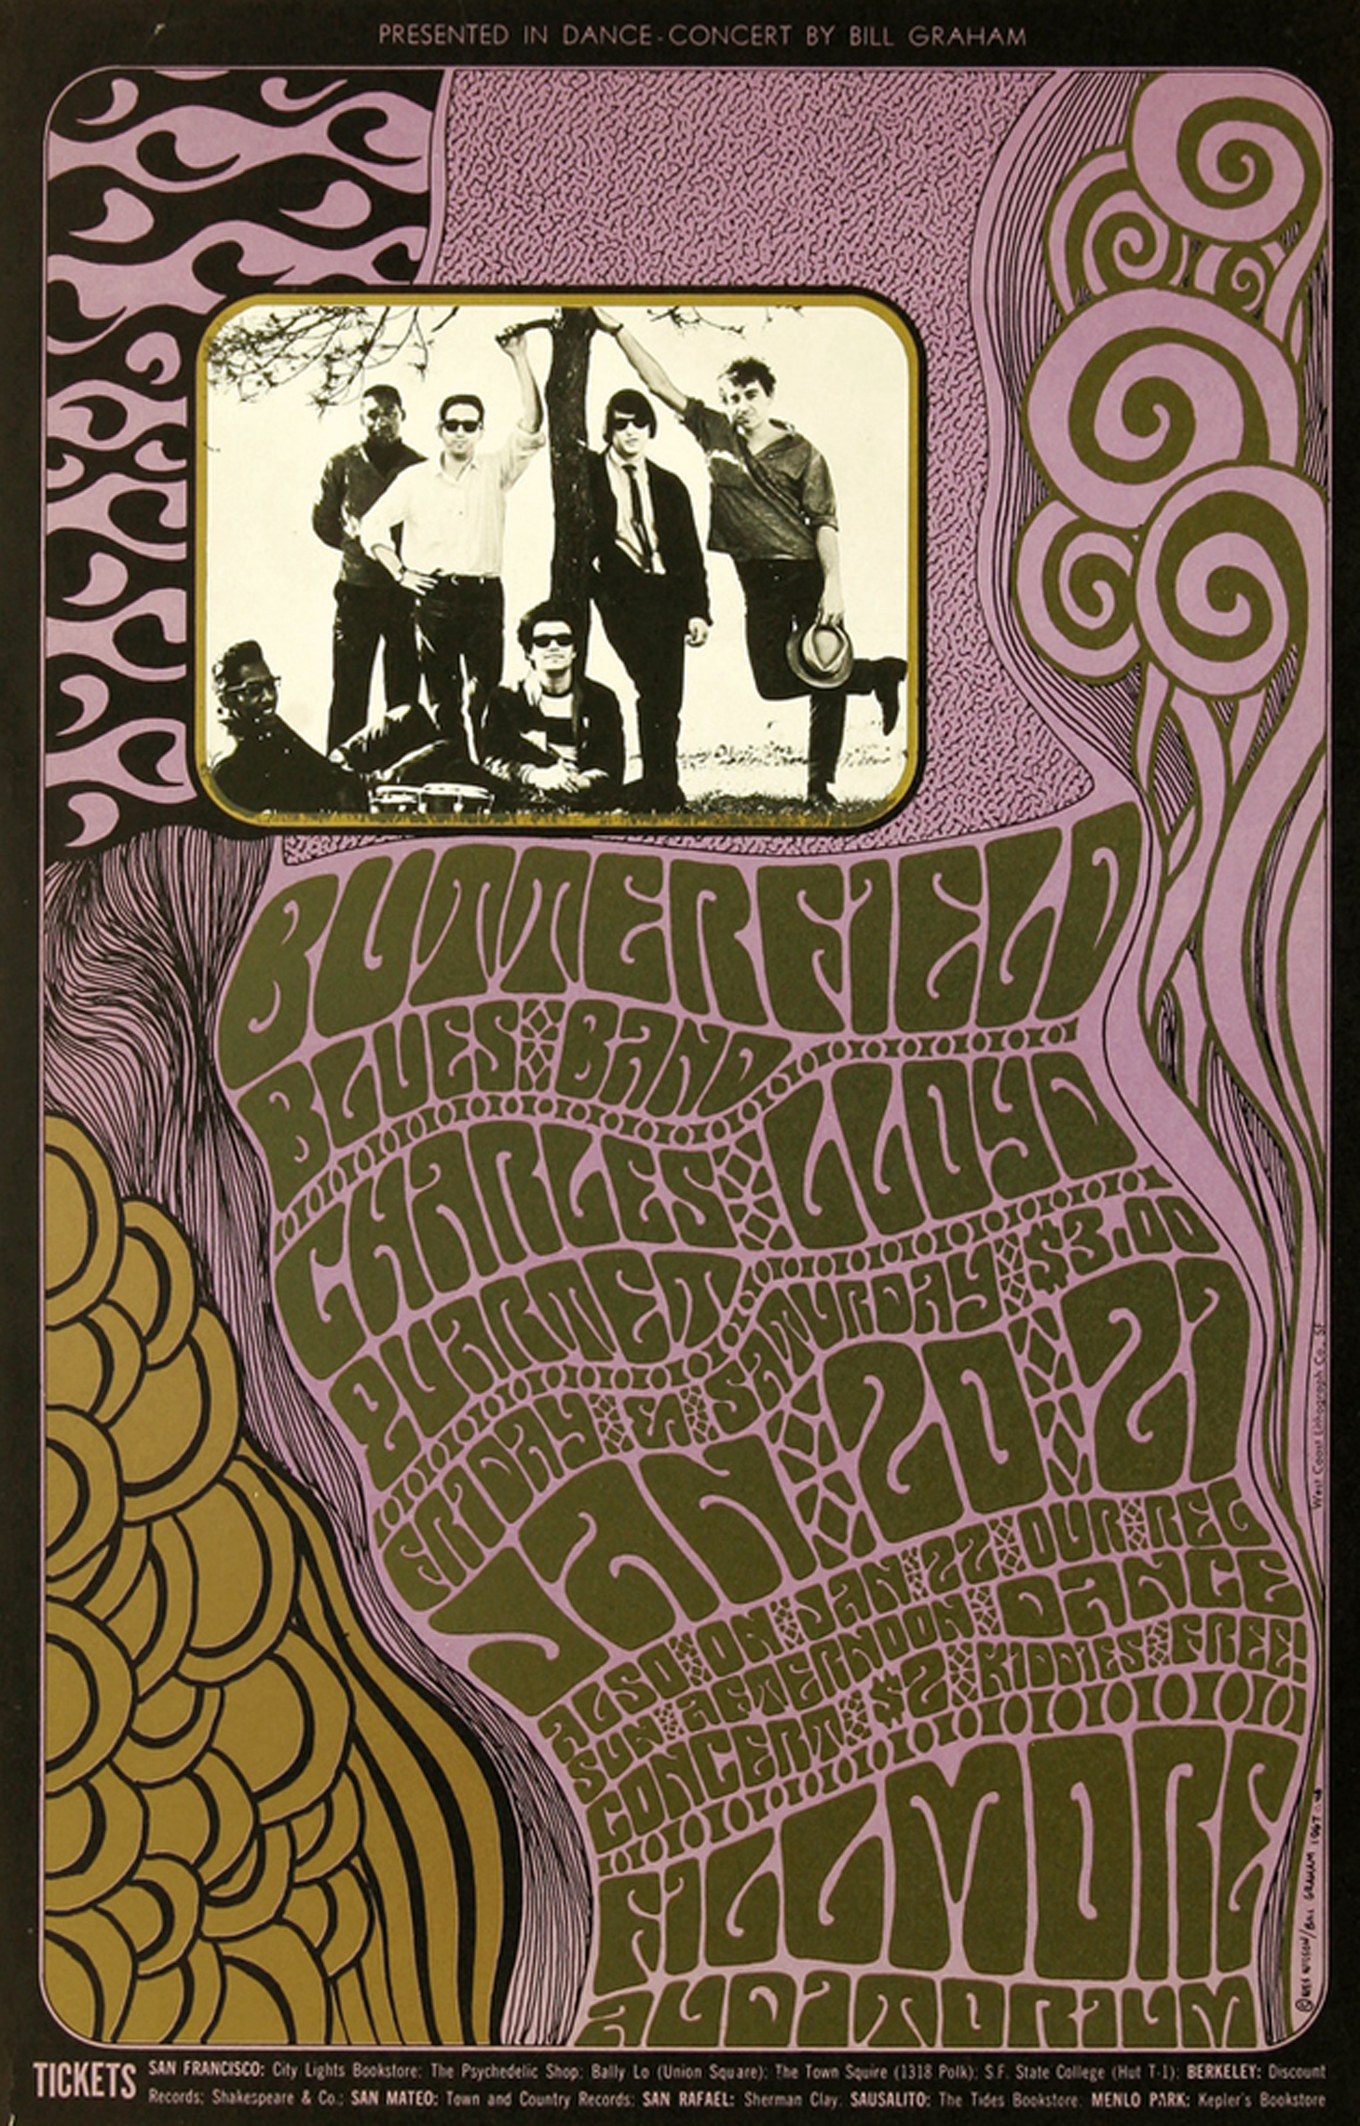 Butterfield Blues Band 1967